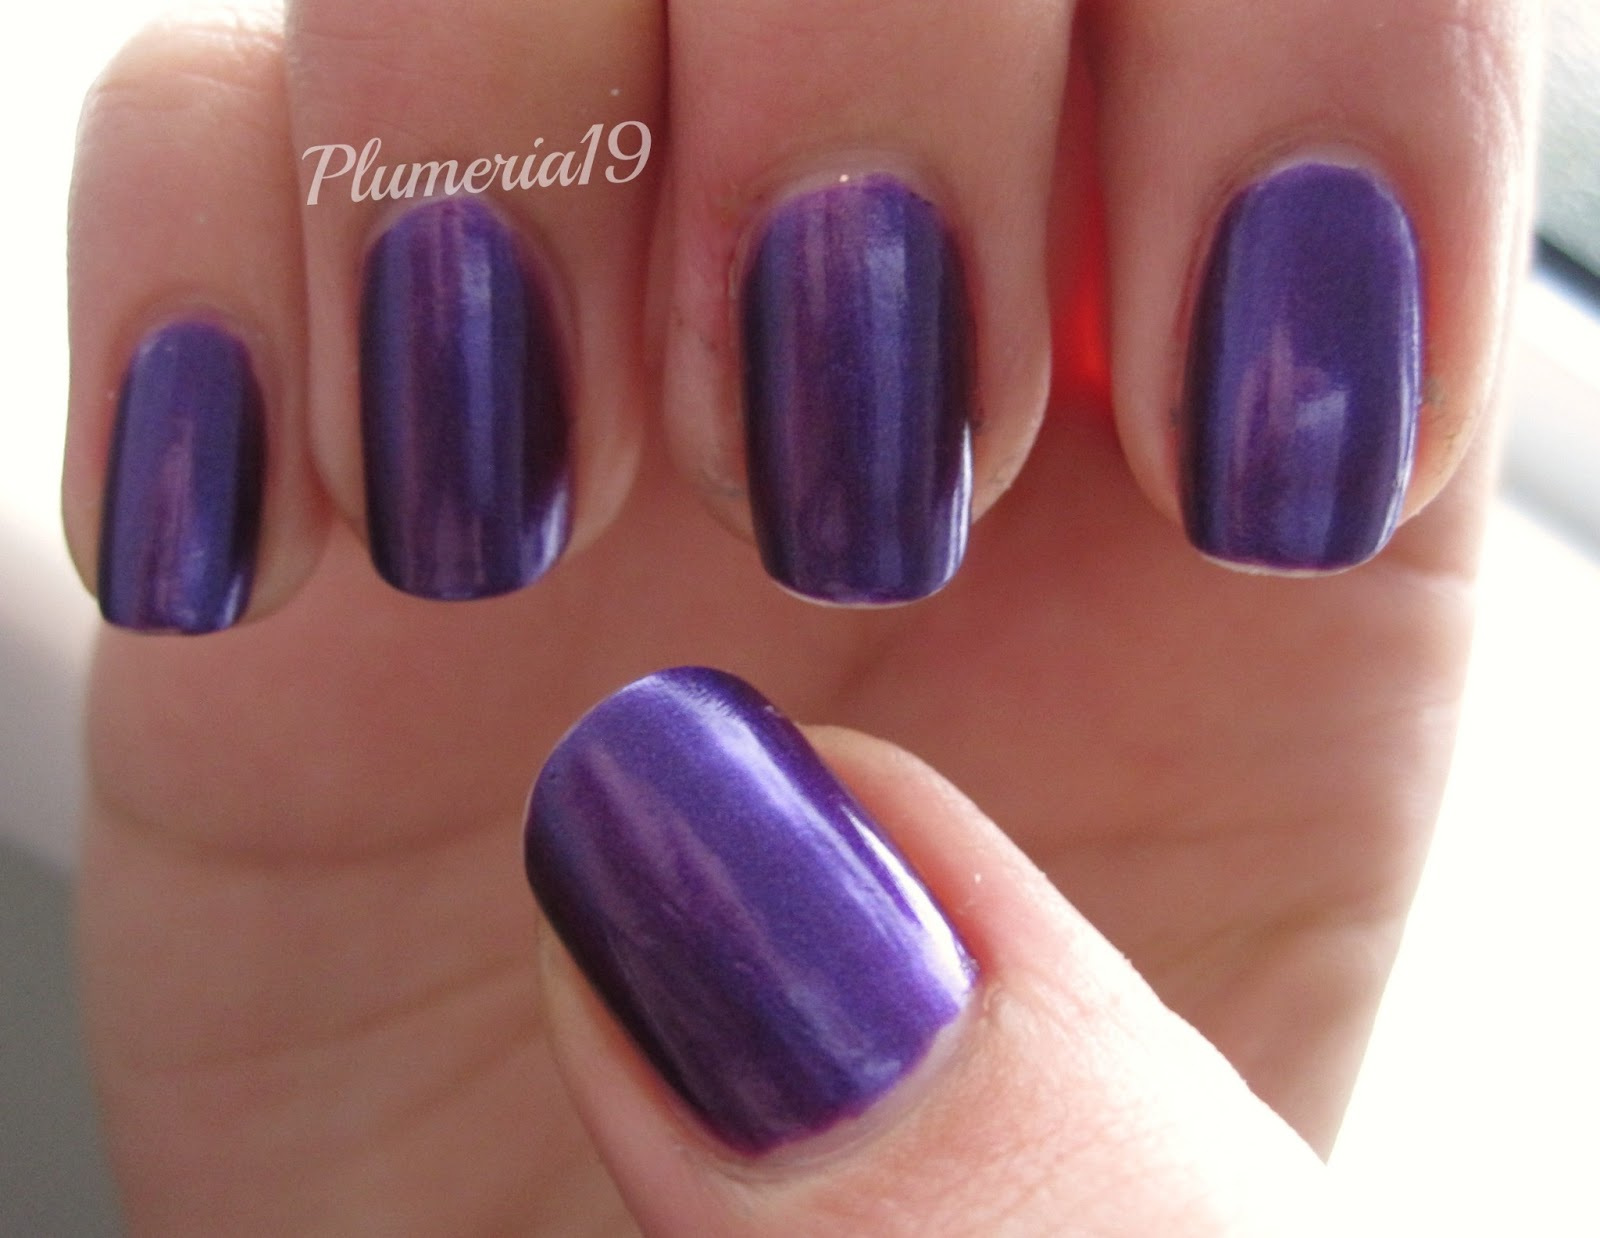 PlumeriaPainted: Purple Nails: OPI - Plum And Get It